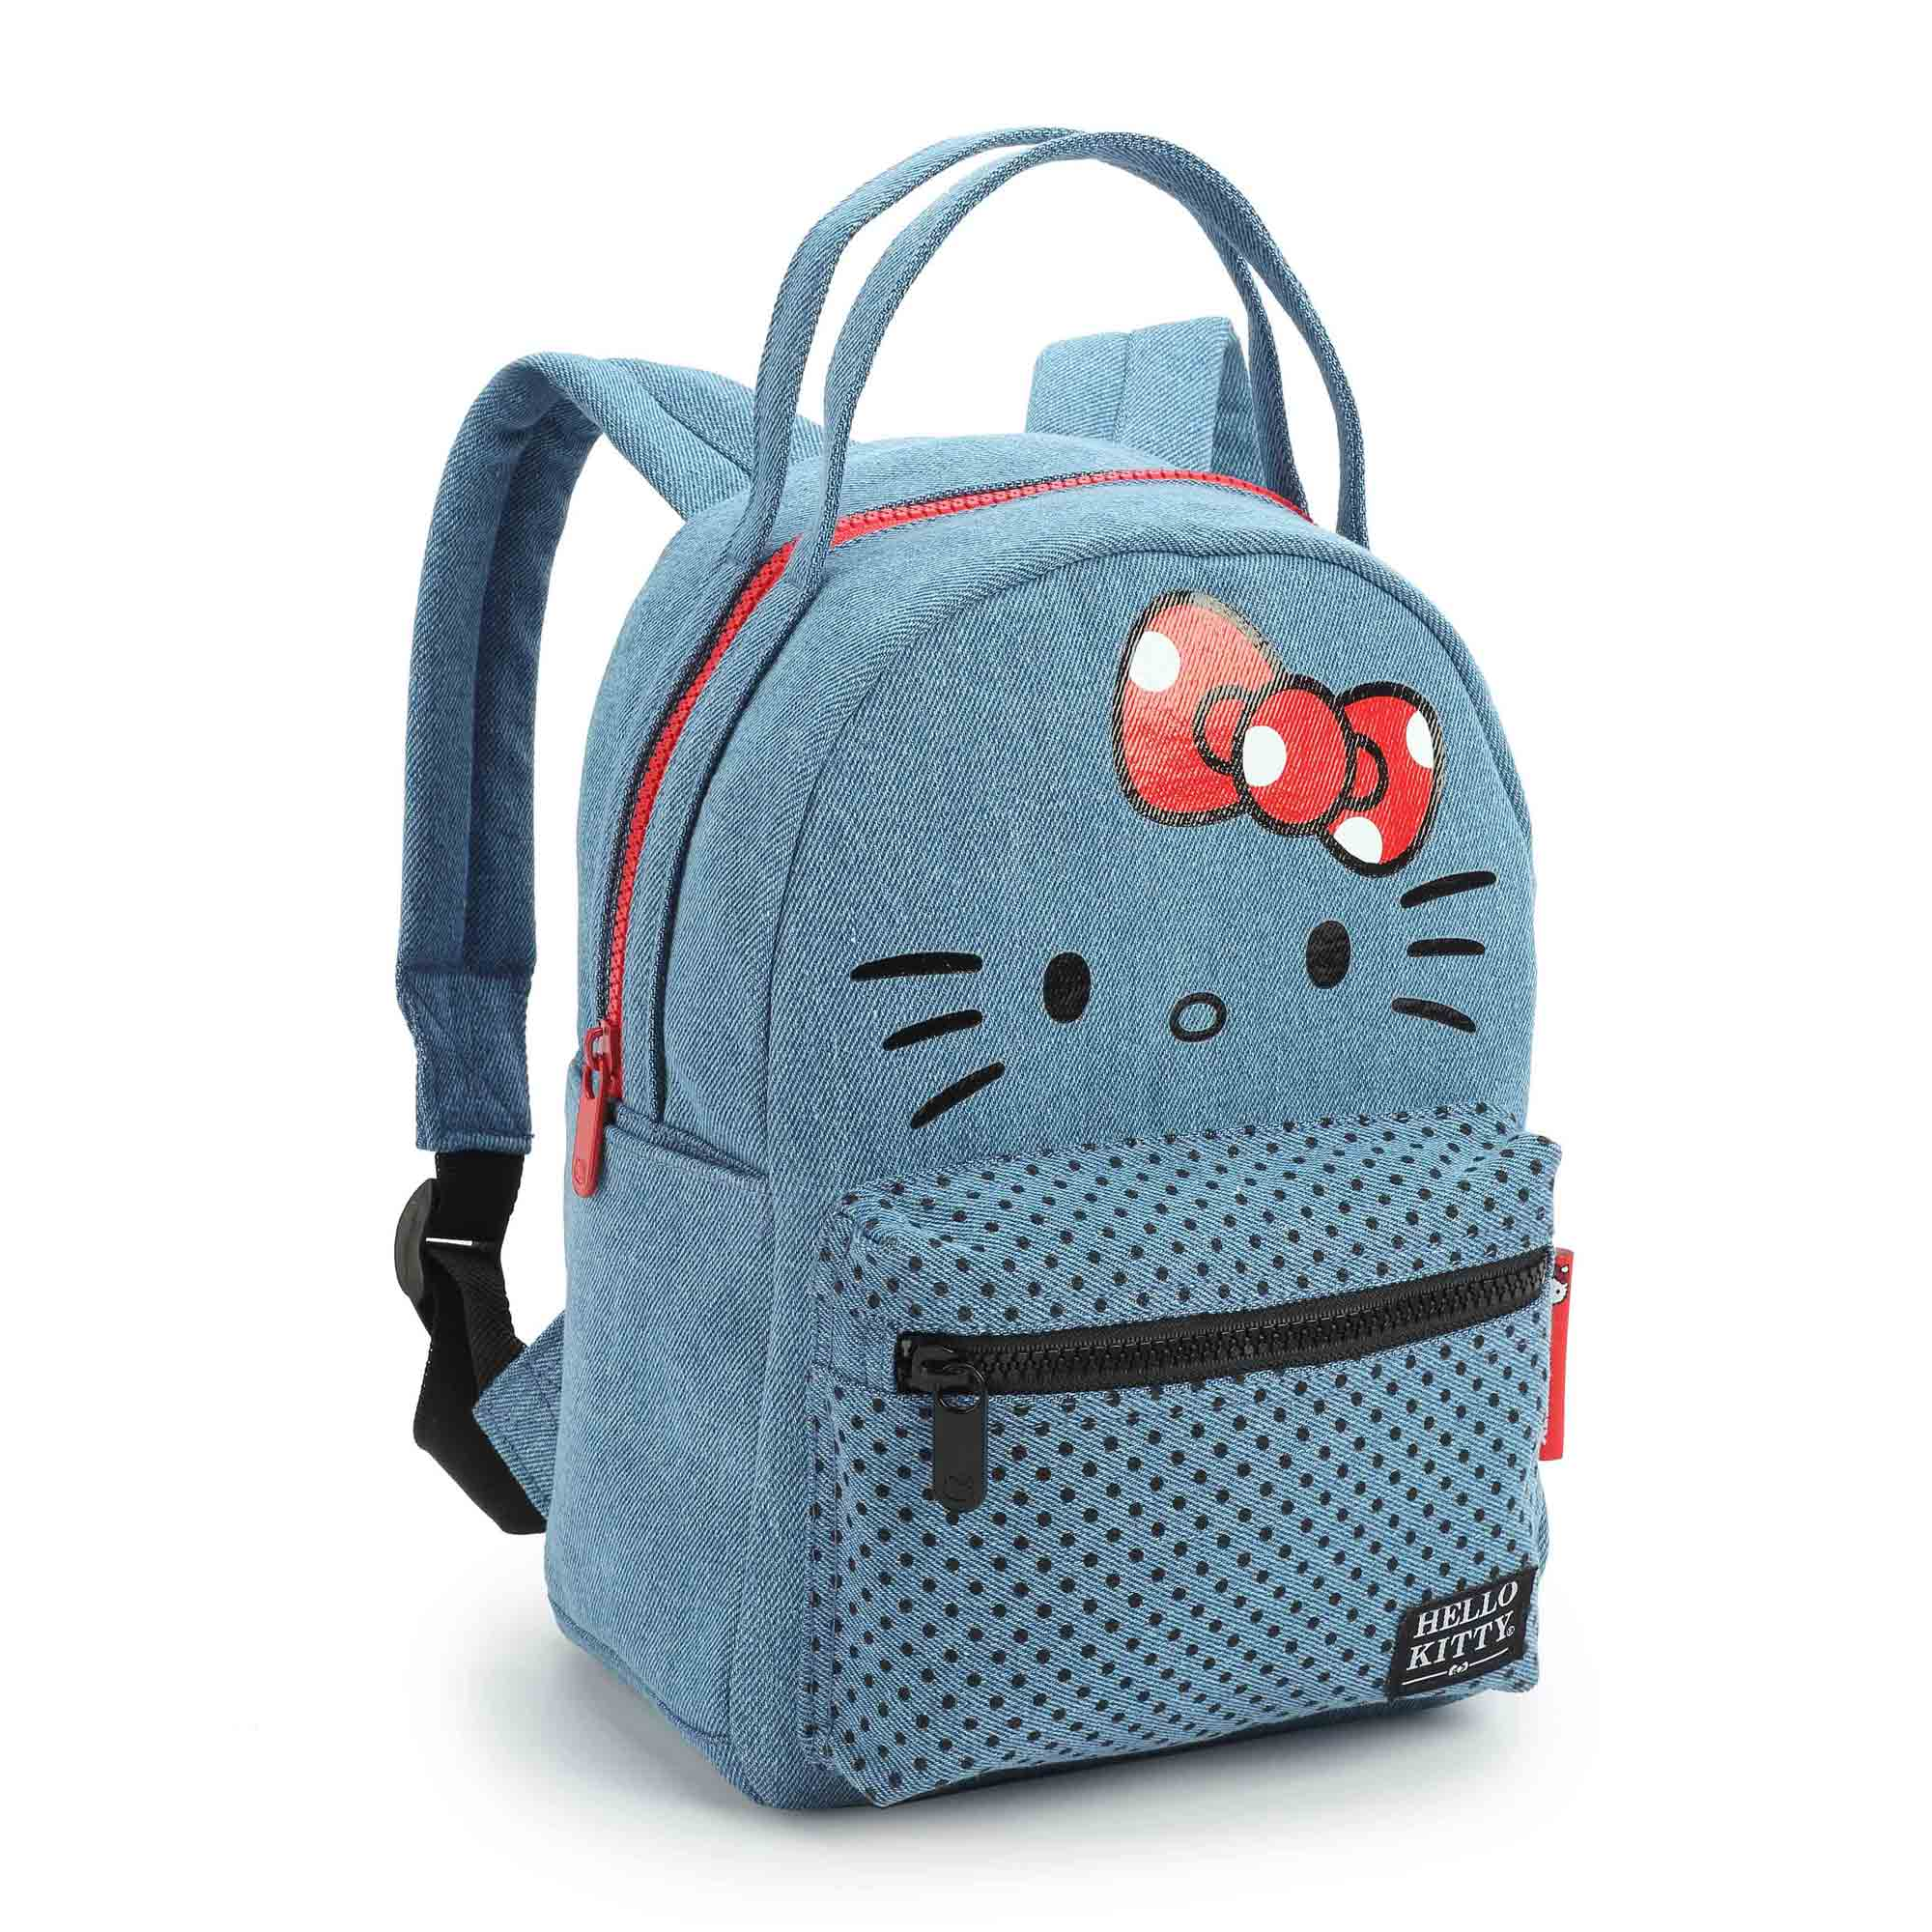 MINI MOCHILA JEANS HELLO KITTY 11